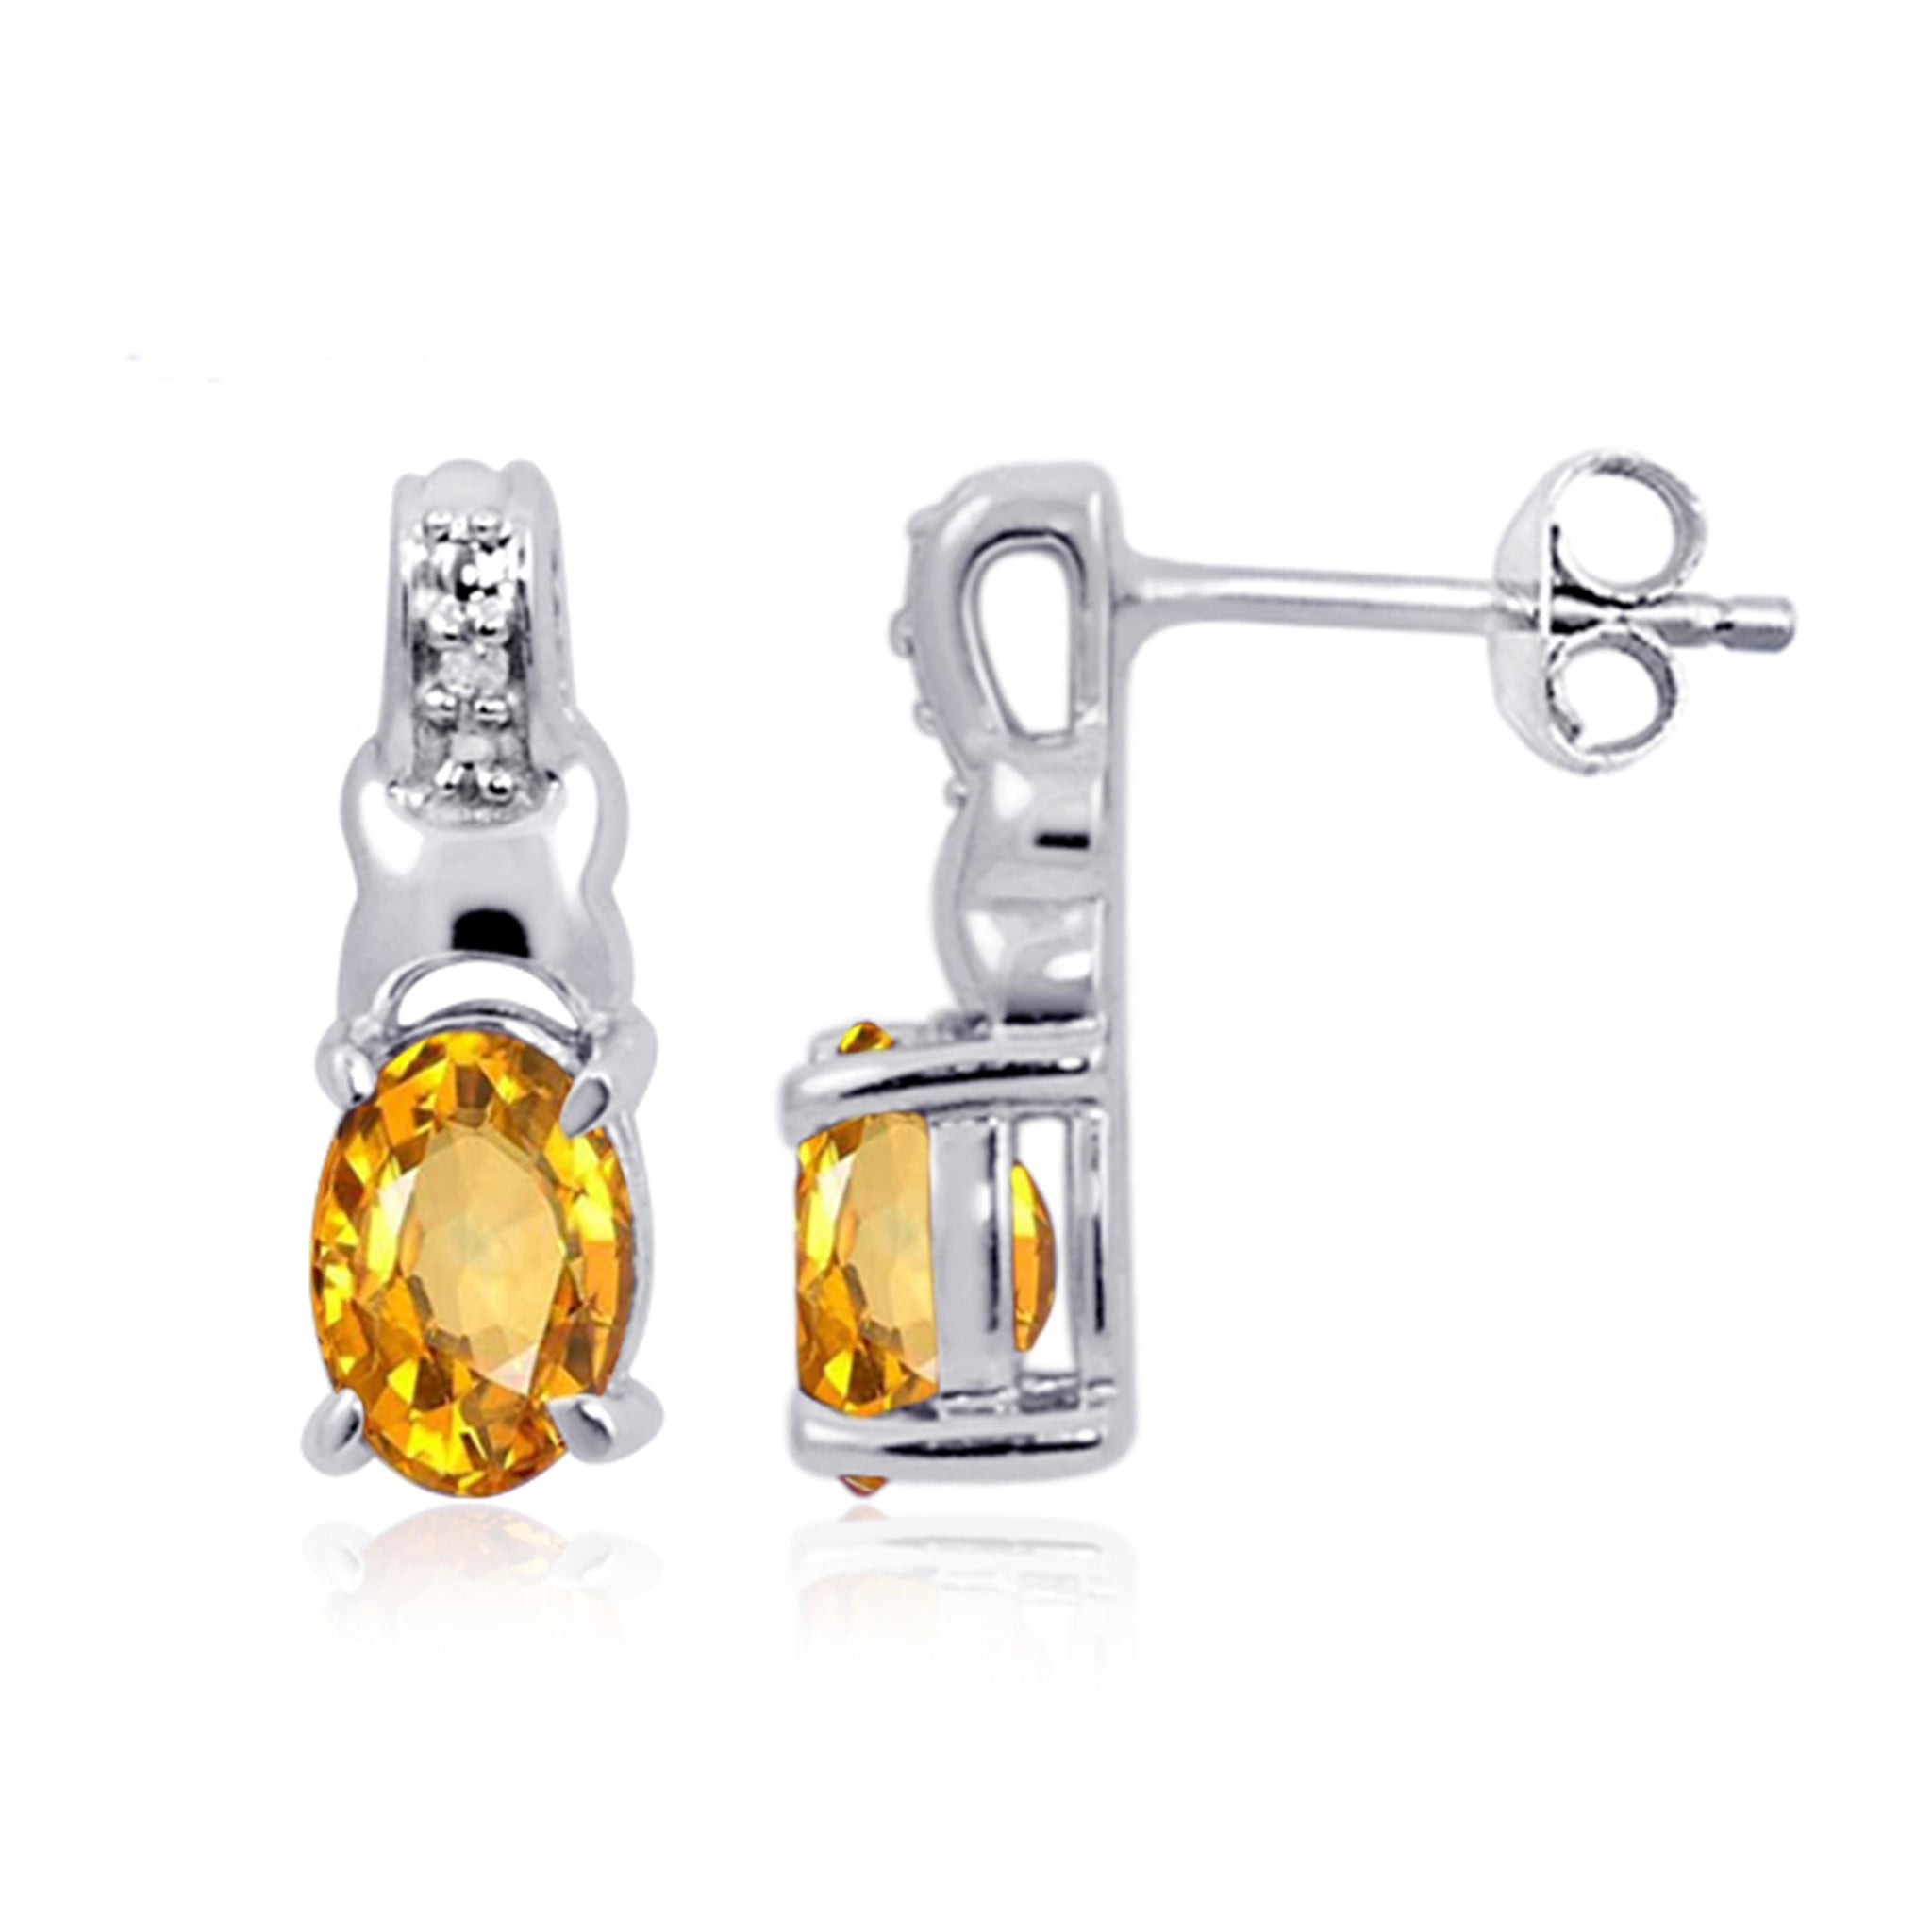 JewelonFire 1.00 Carat T.G.W. Citrine And White Diamond Accent Sterling Silver Stud Earrings - Assorted Colors